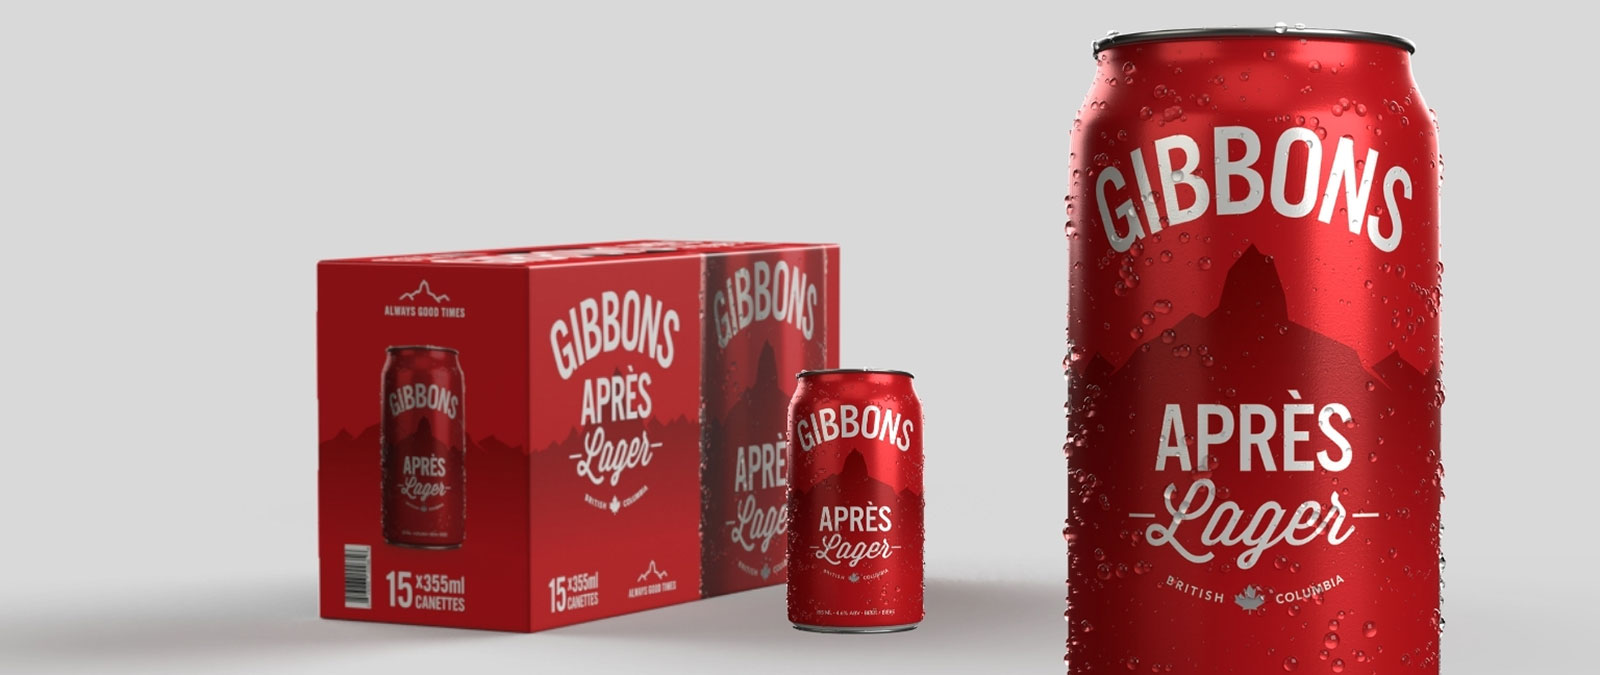 gibbons apres lager 15-pack coming soon